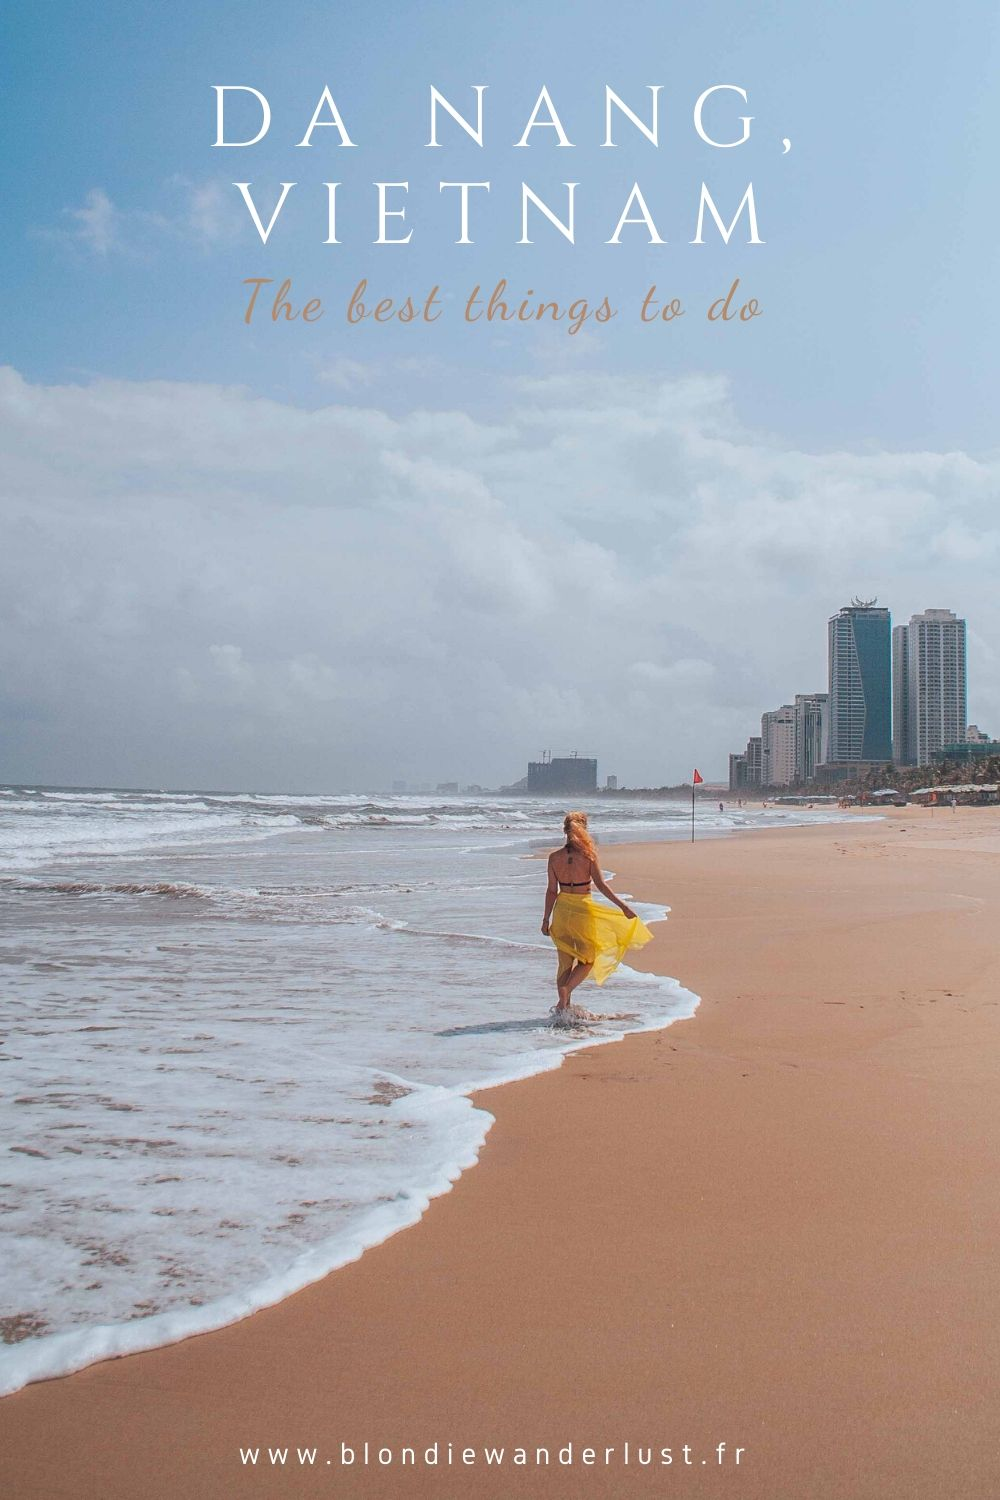 Da Nang, Vietnam, the best things to do